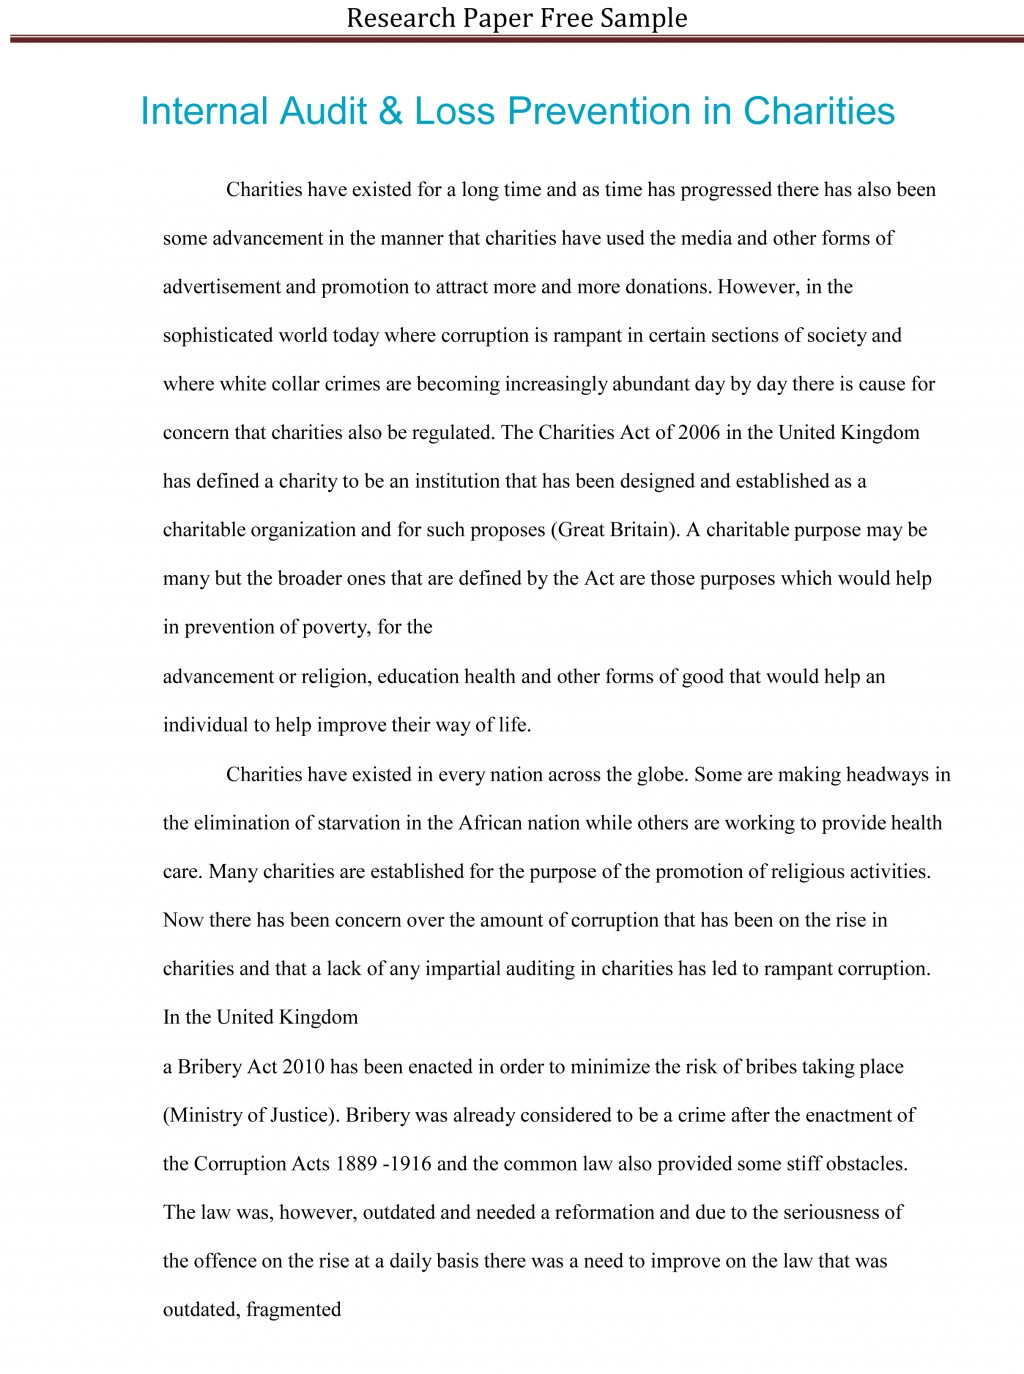 007 Research Paper Free Beautiful Online Publication Freedom Of Speech Large